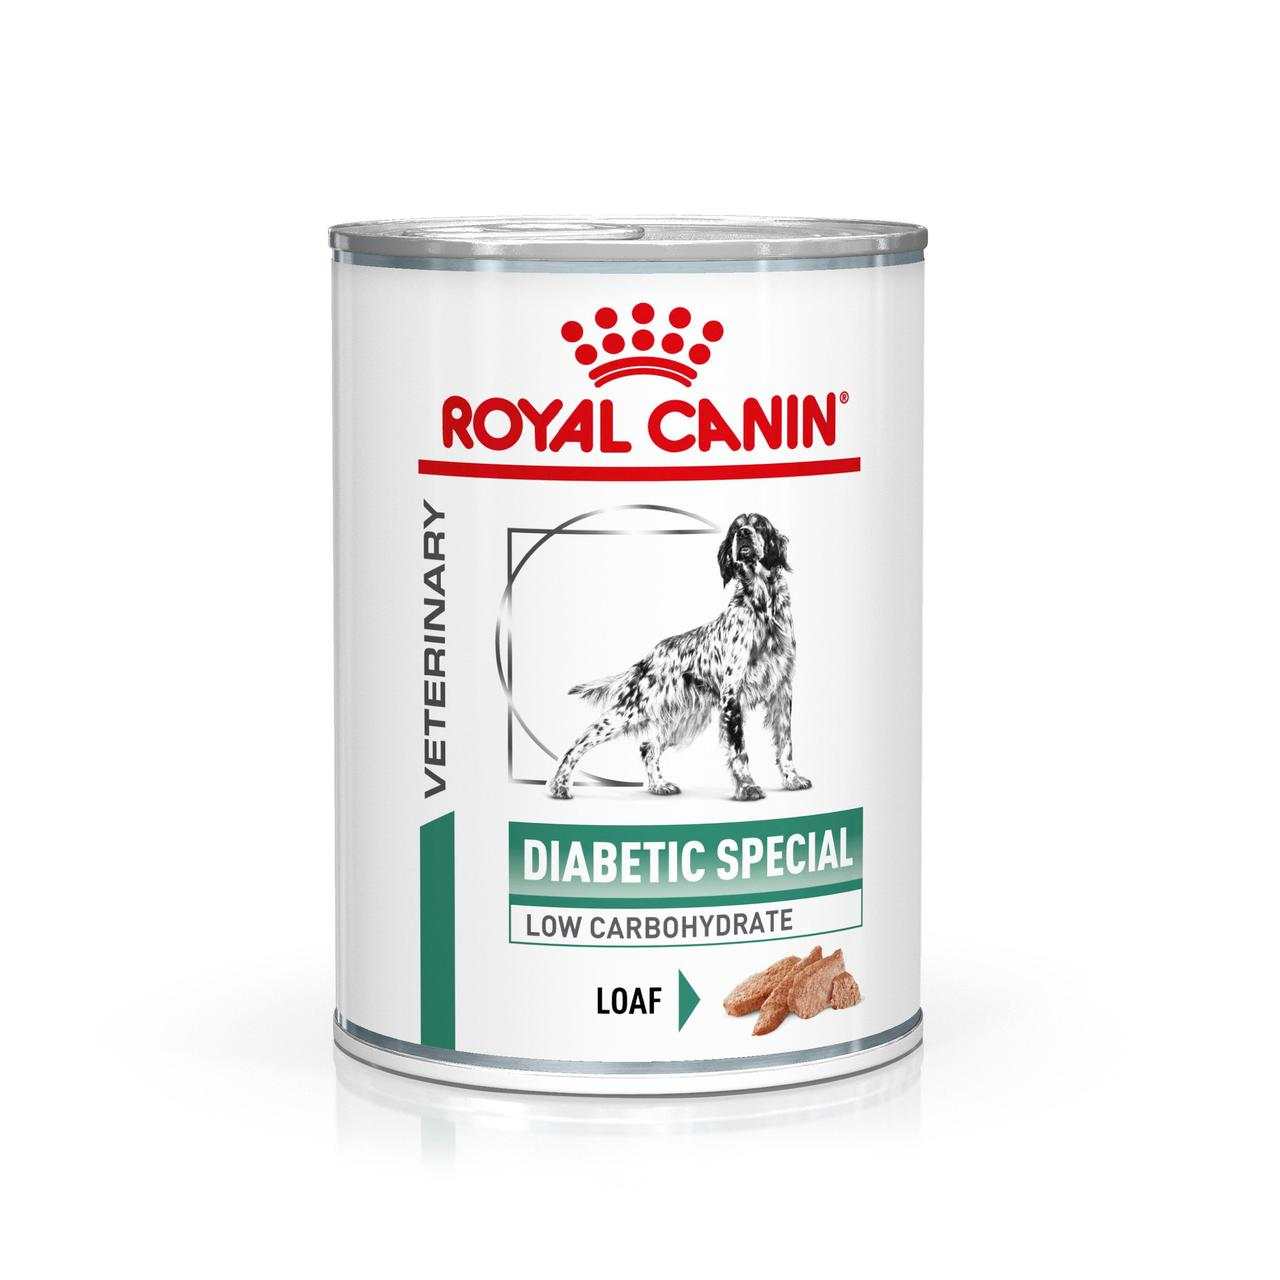 An image of Royal Canin Canine Diabetic